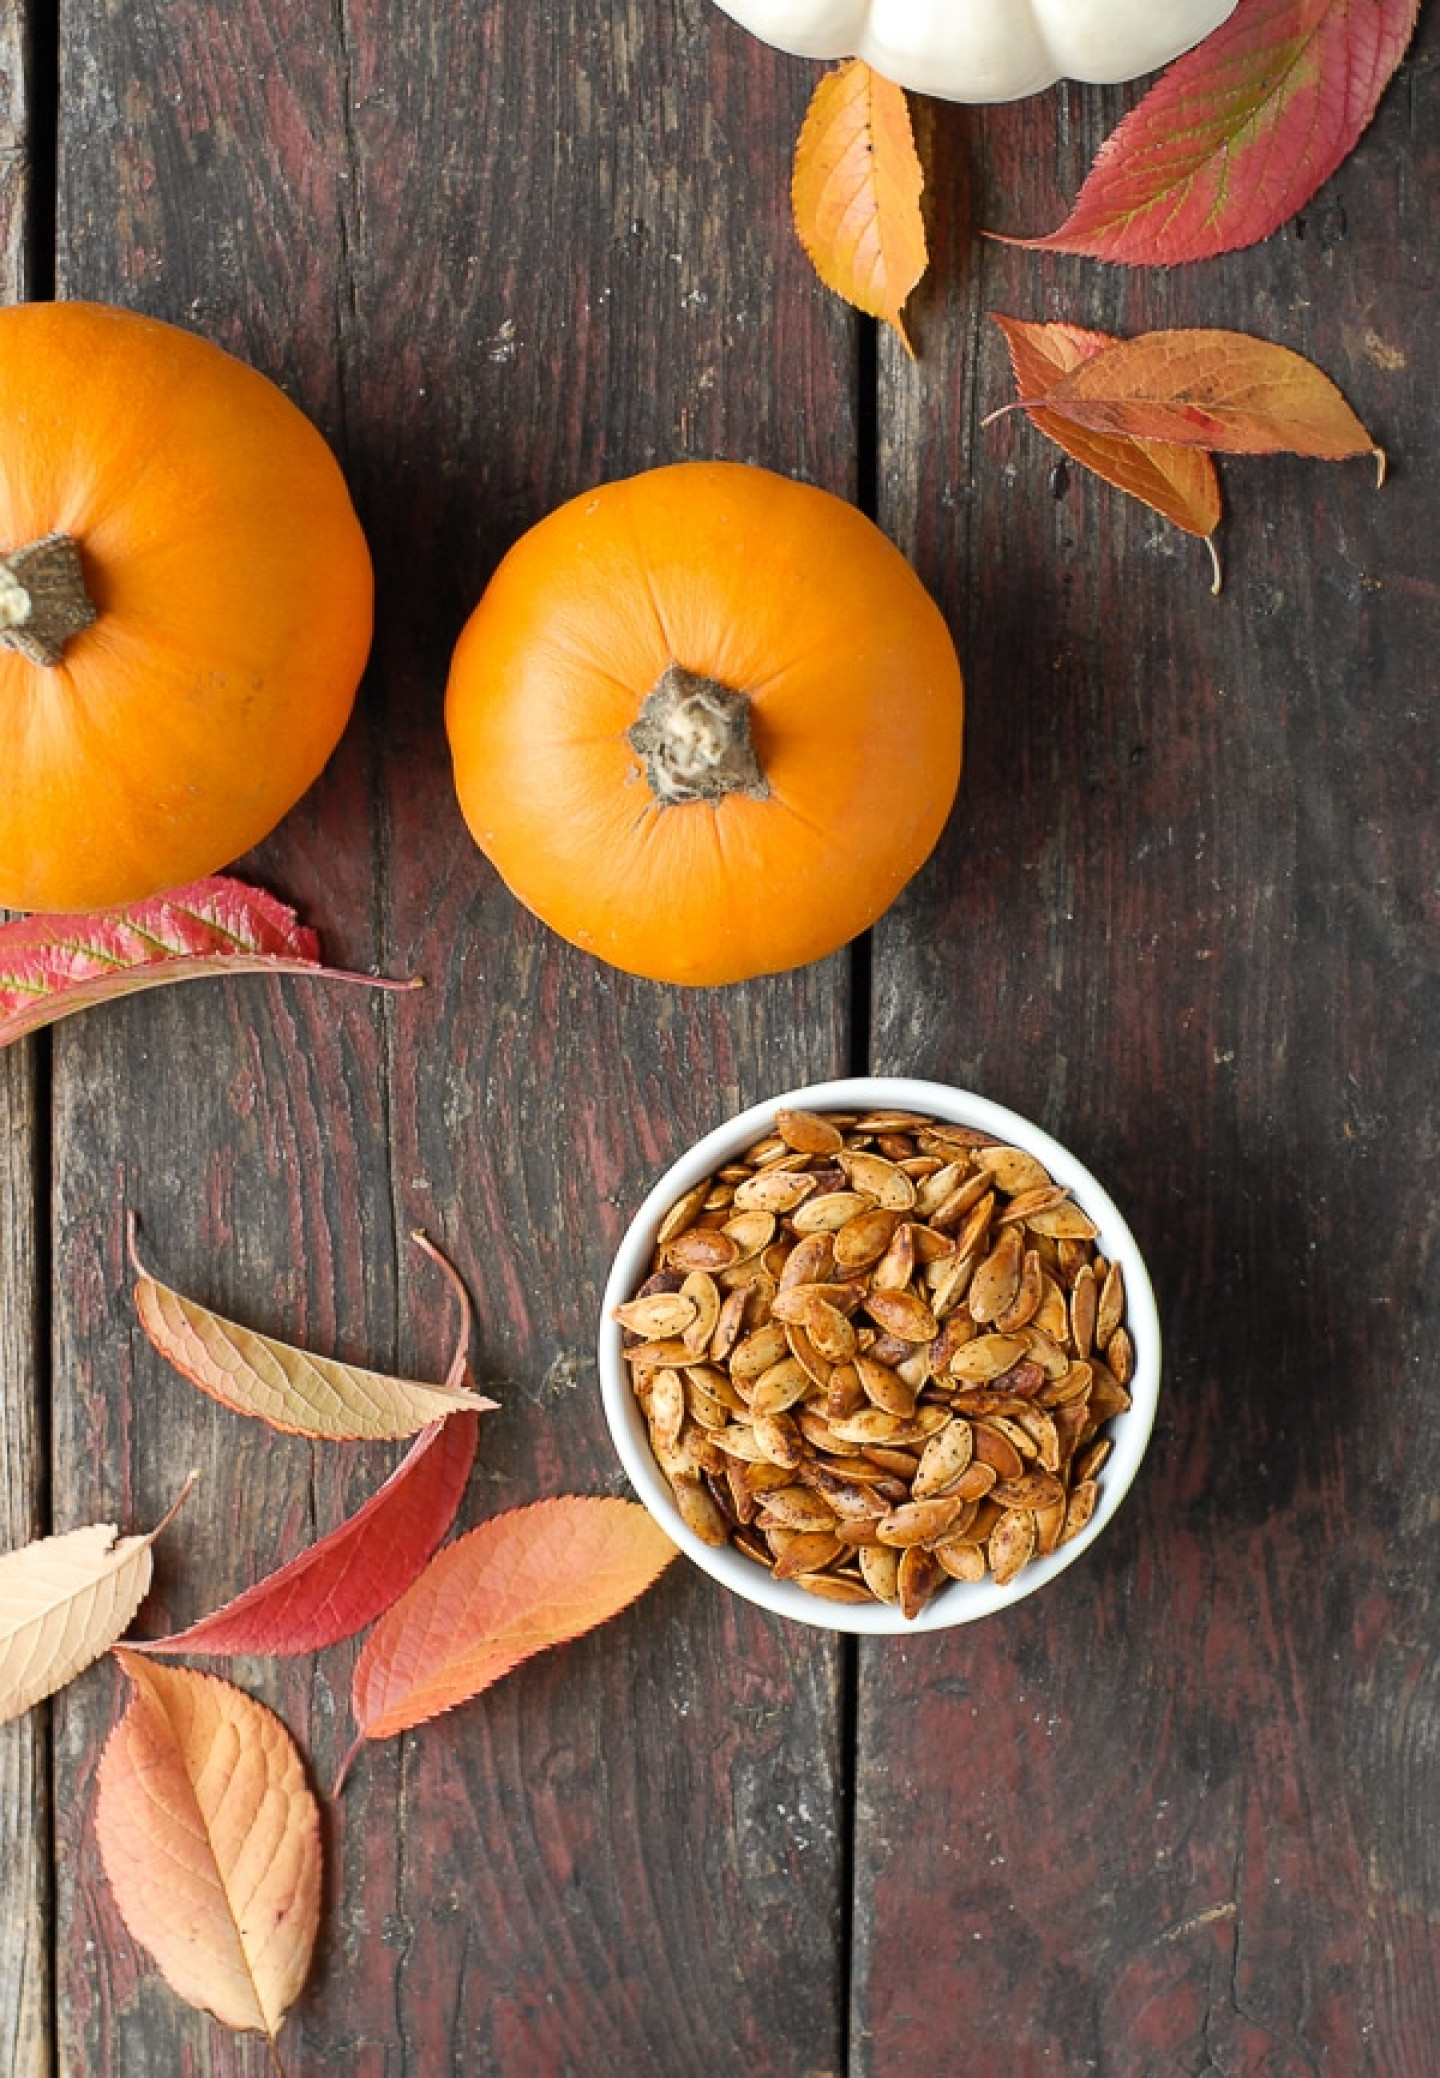 The-Best-Pumpkin-Seed-Roasting-Method-Ever-BoulderLocavore.com-168